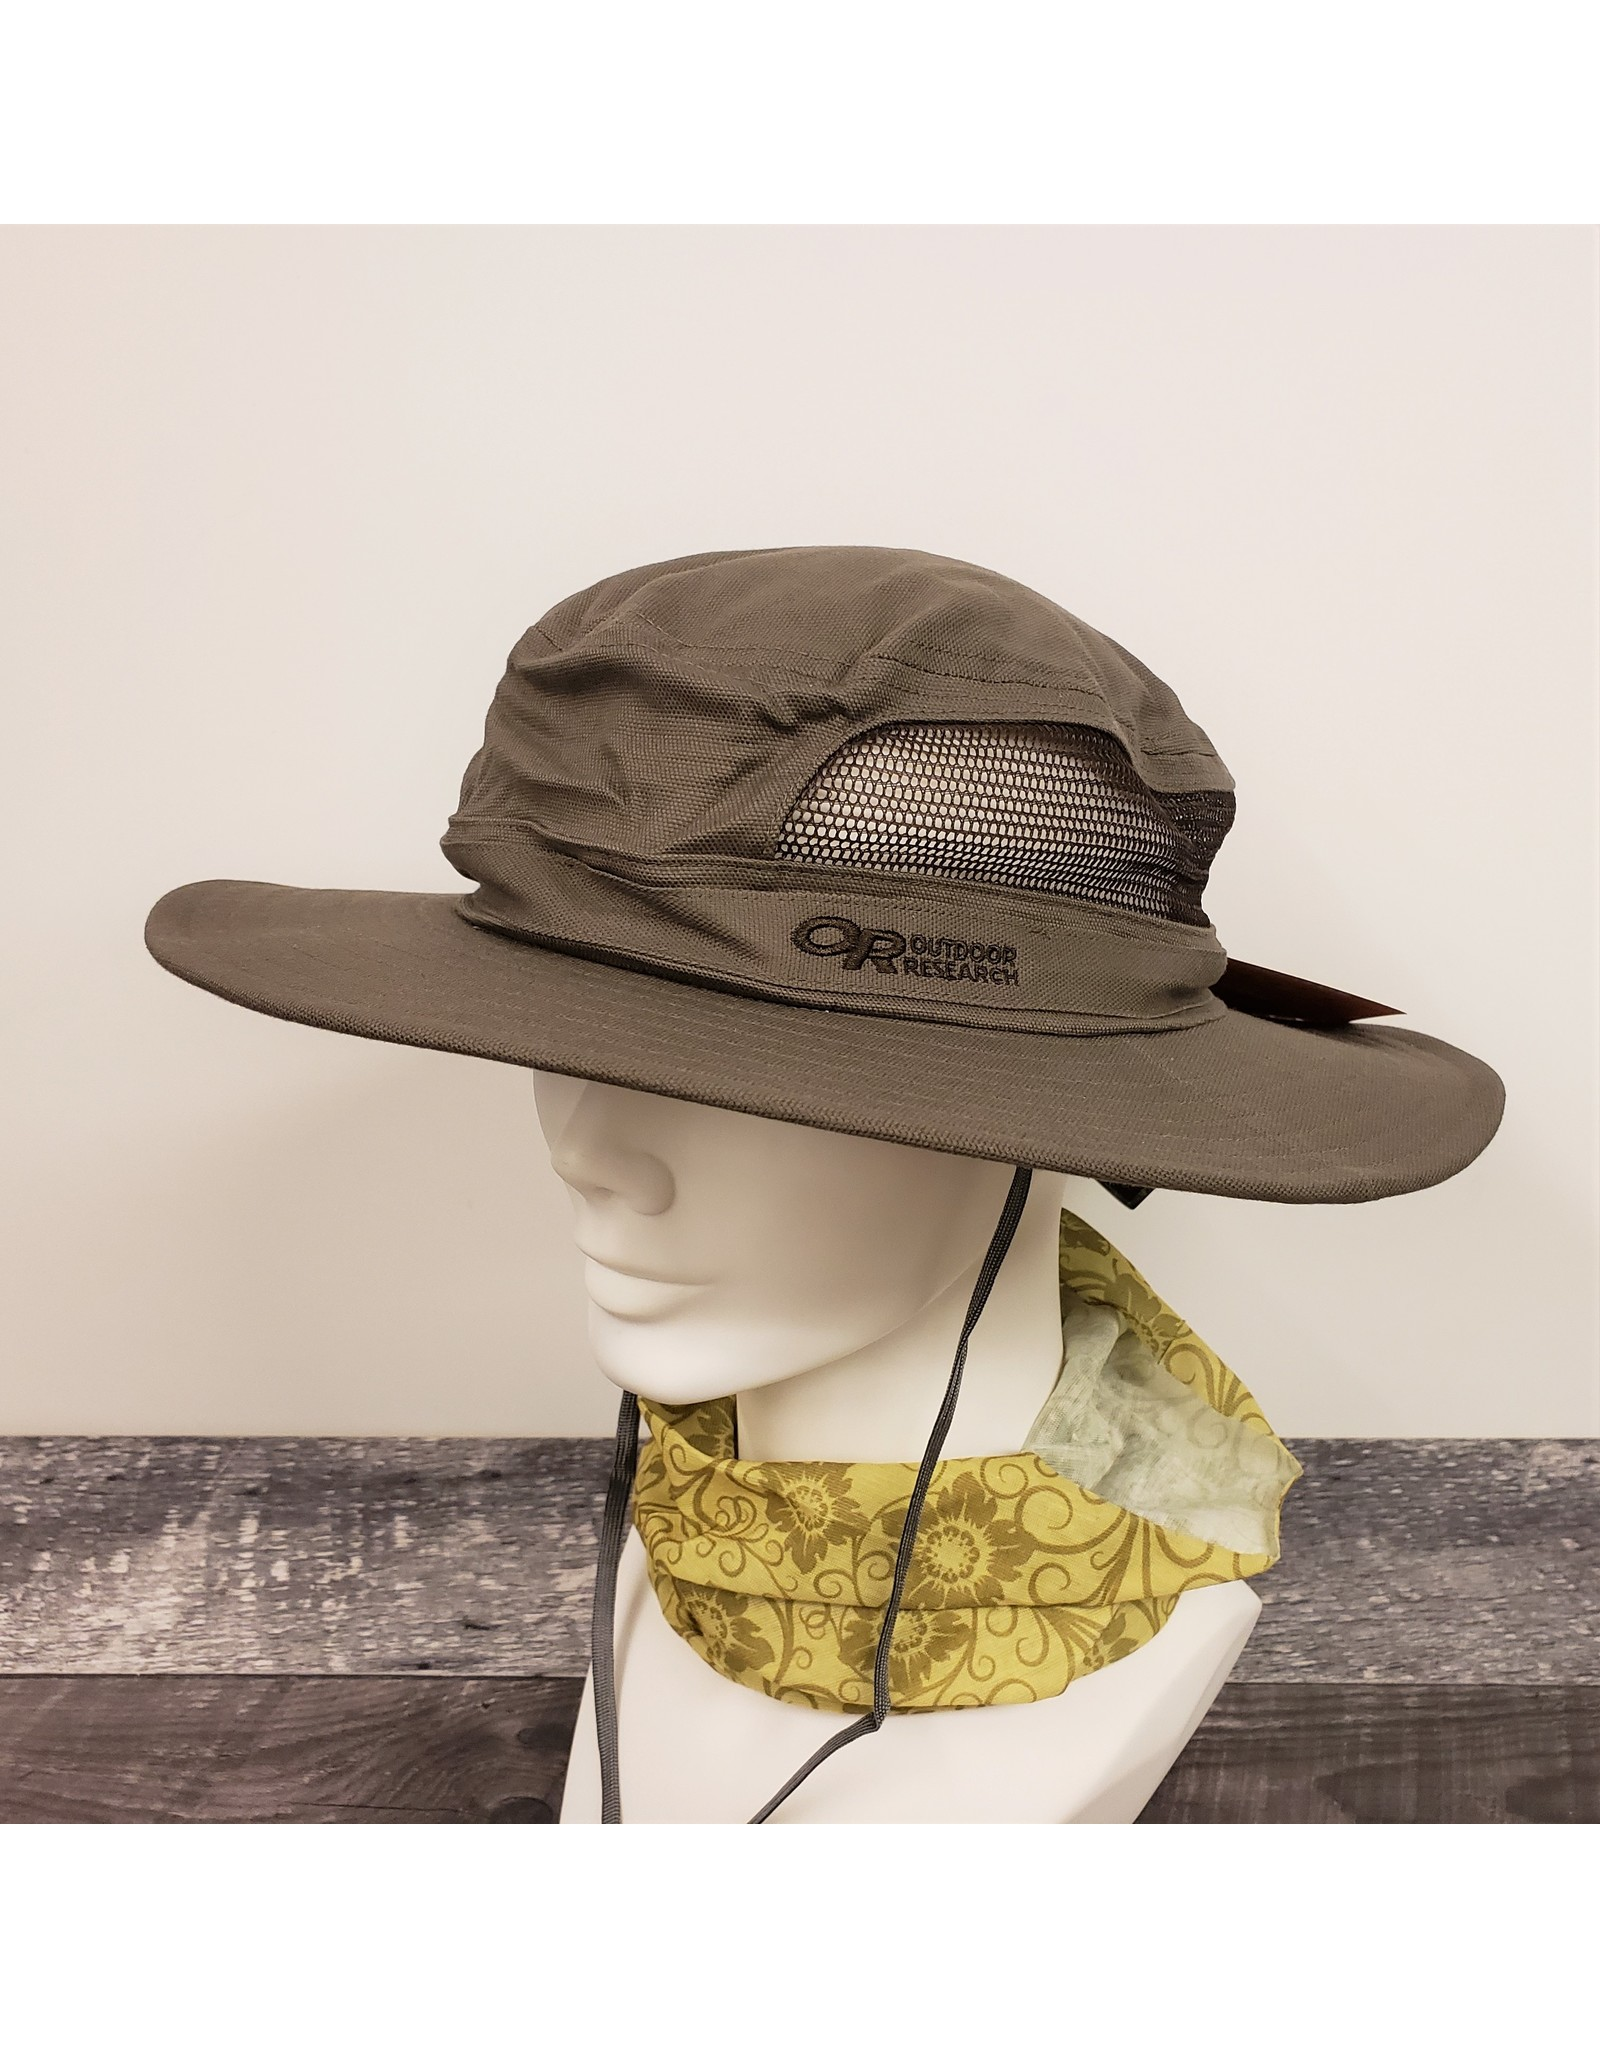 OUTDOOR RESEARCH OR TRANSIT SUN HAT